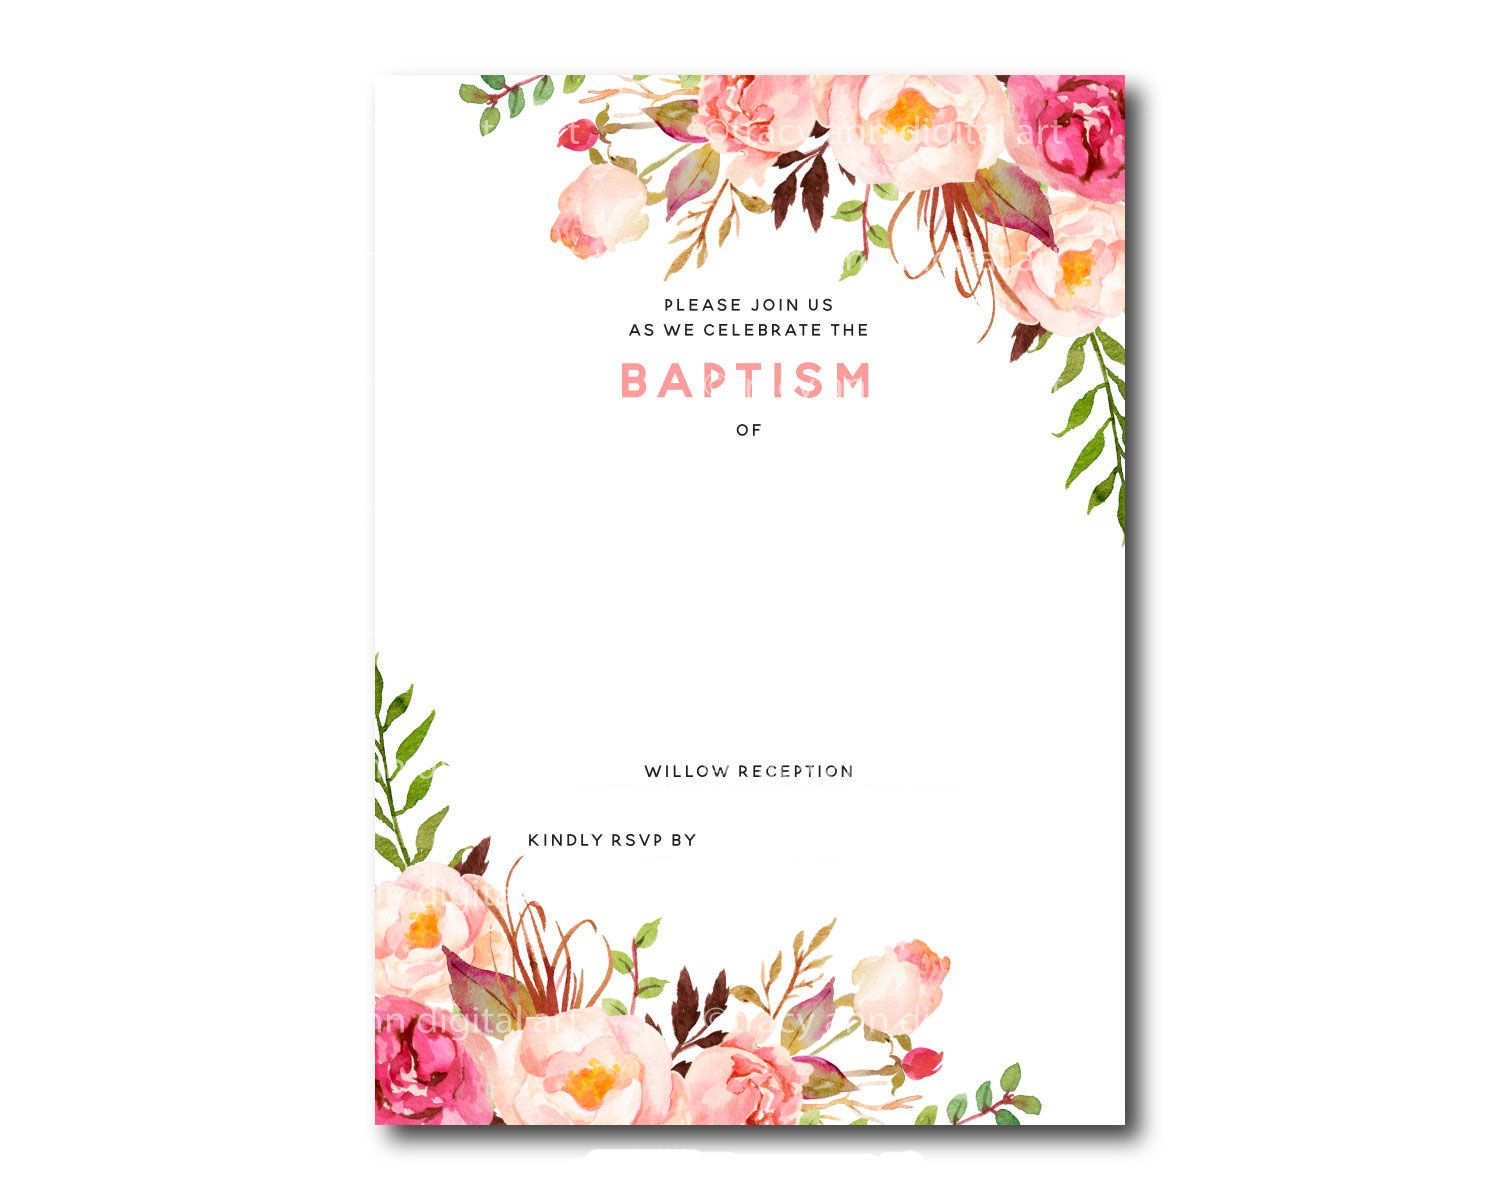 Free recommendation letter sample invitation maker online invitation maker online christening fresh baptism invitation card baptism invitation card maker free save ideas collection invitation card wording for stopboris Choice Image